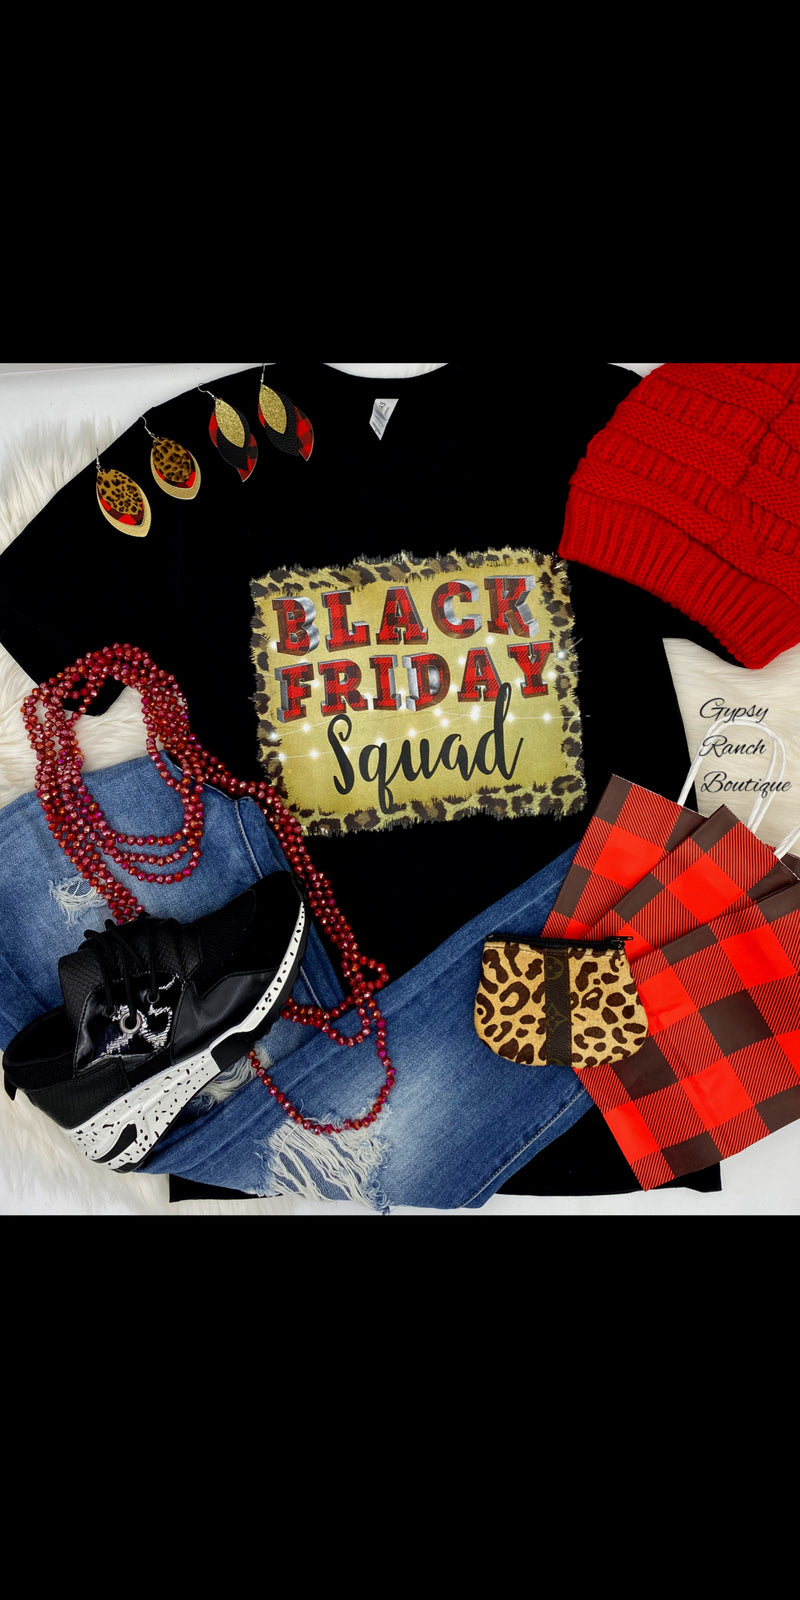 Black Friday Squad Top - Also in Plus Size